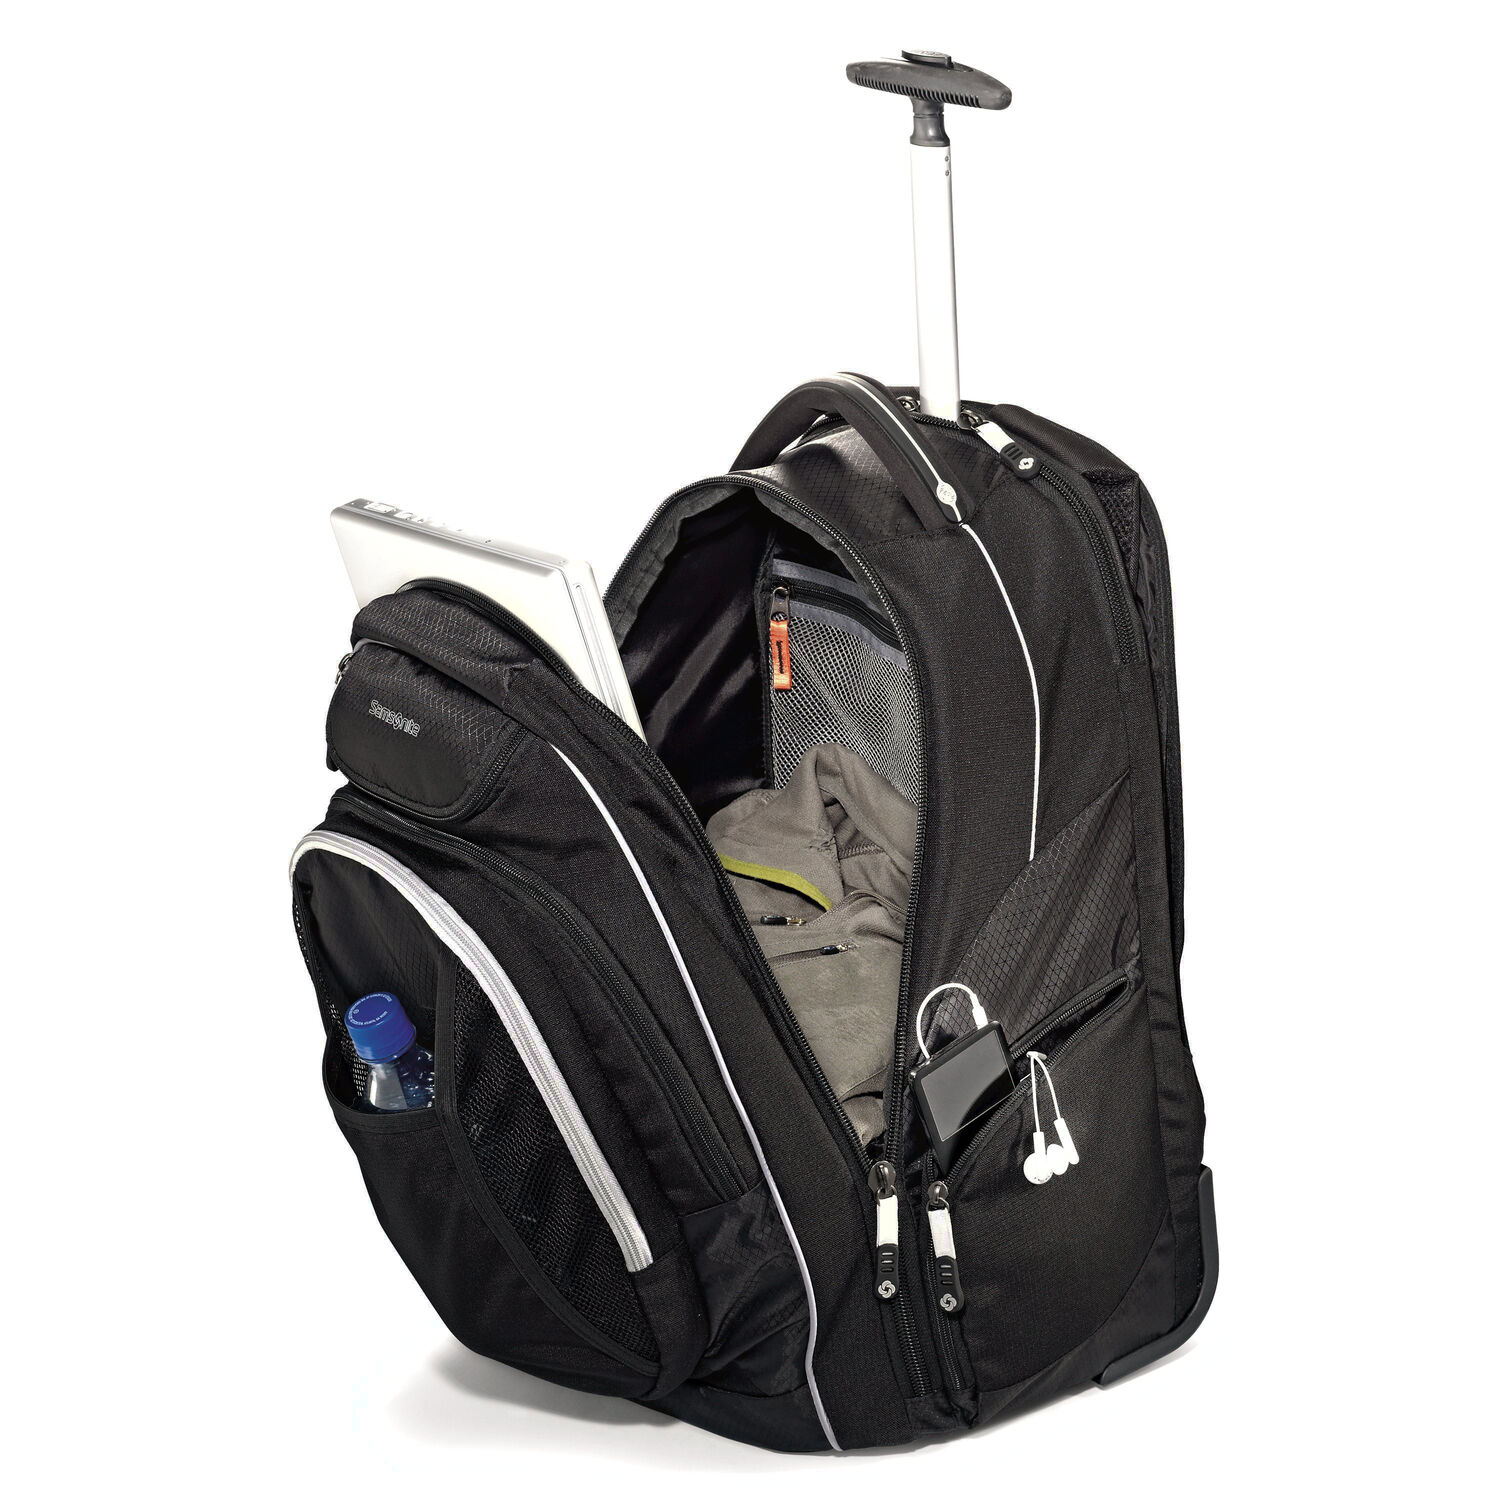 Samsonite Tectonic Tectonic 21 Quot Wheeled Backpack